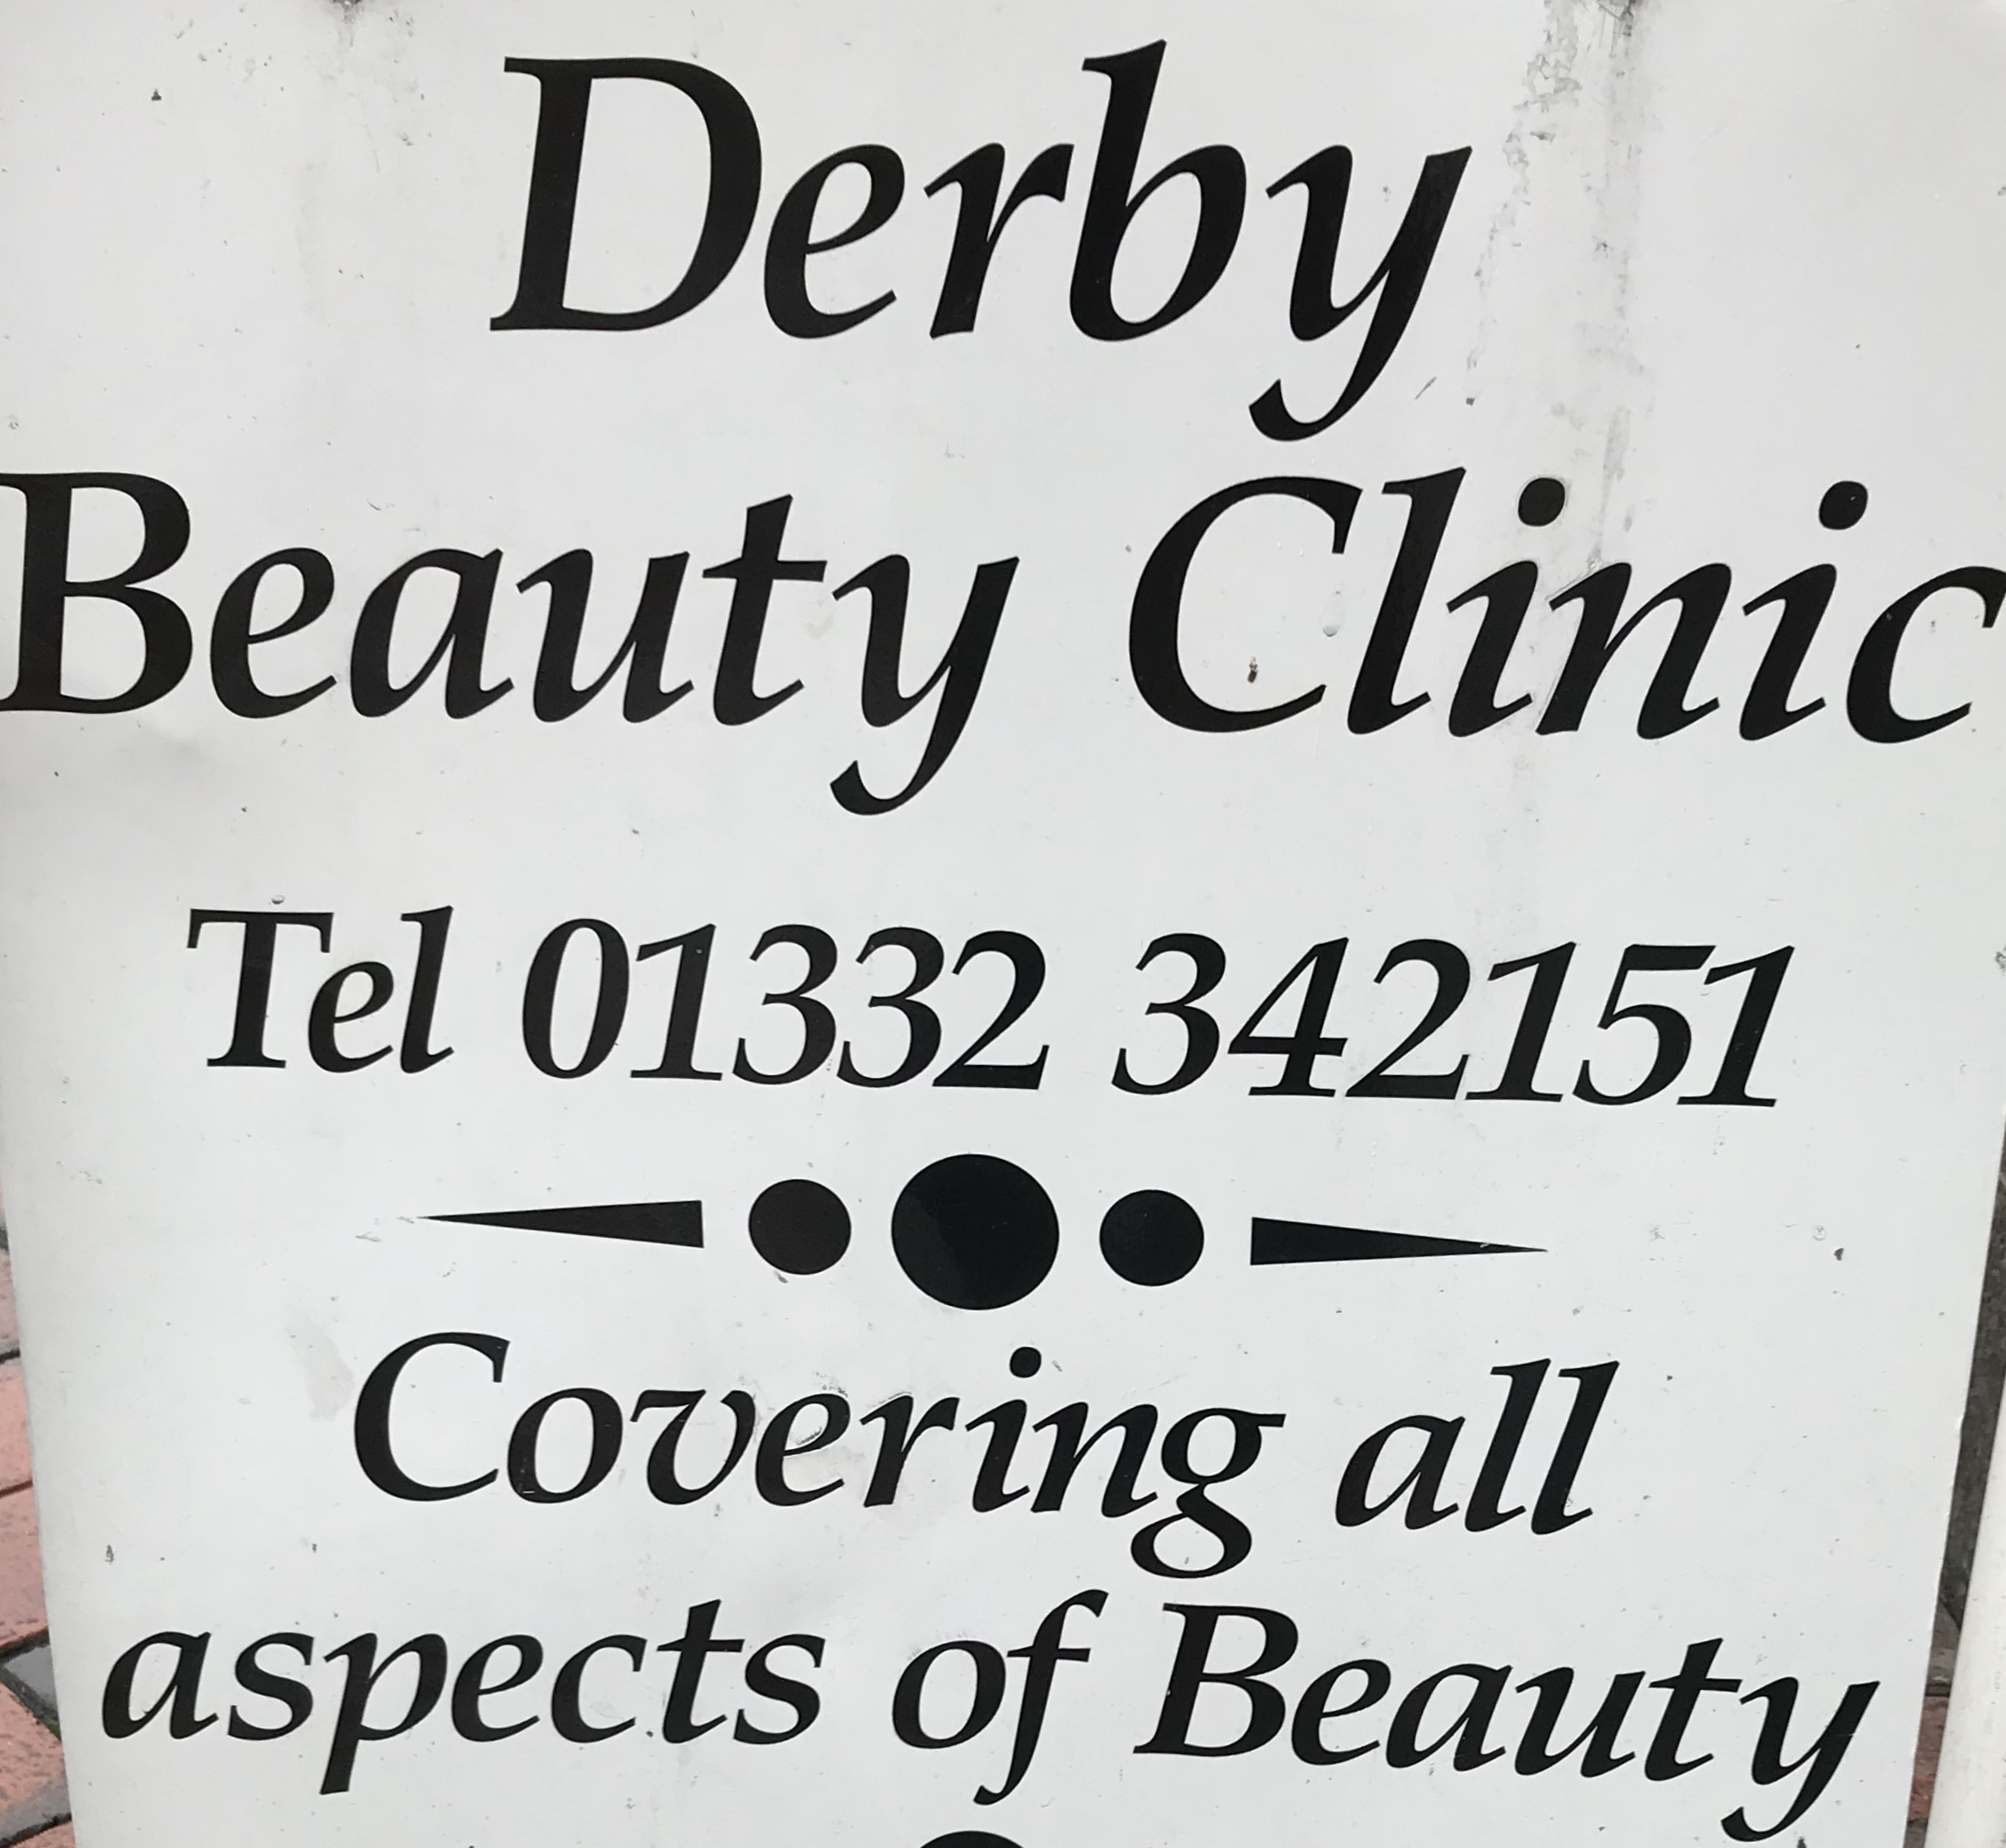 Derby Electrolysis & Beauty Clinic